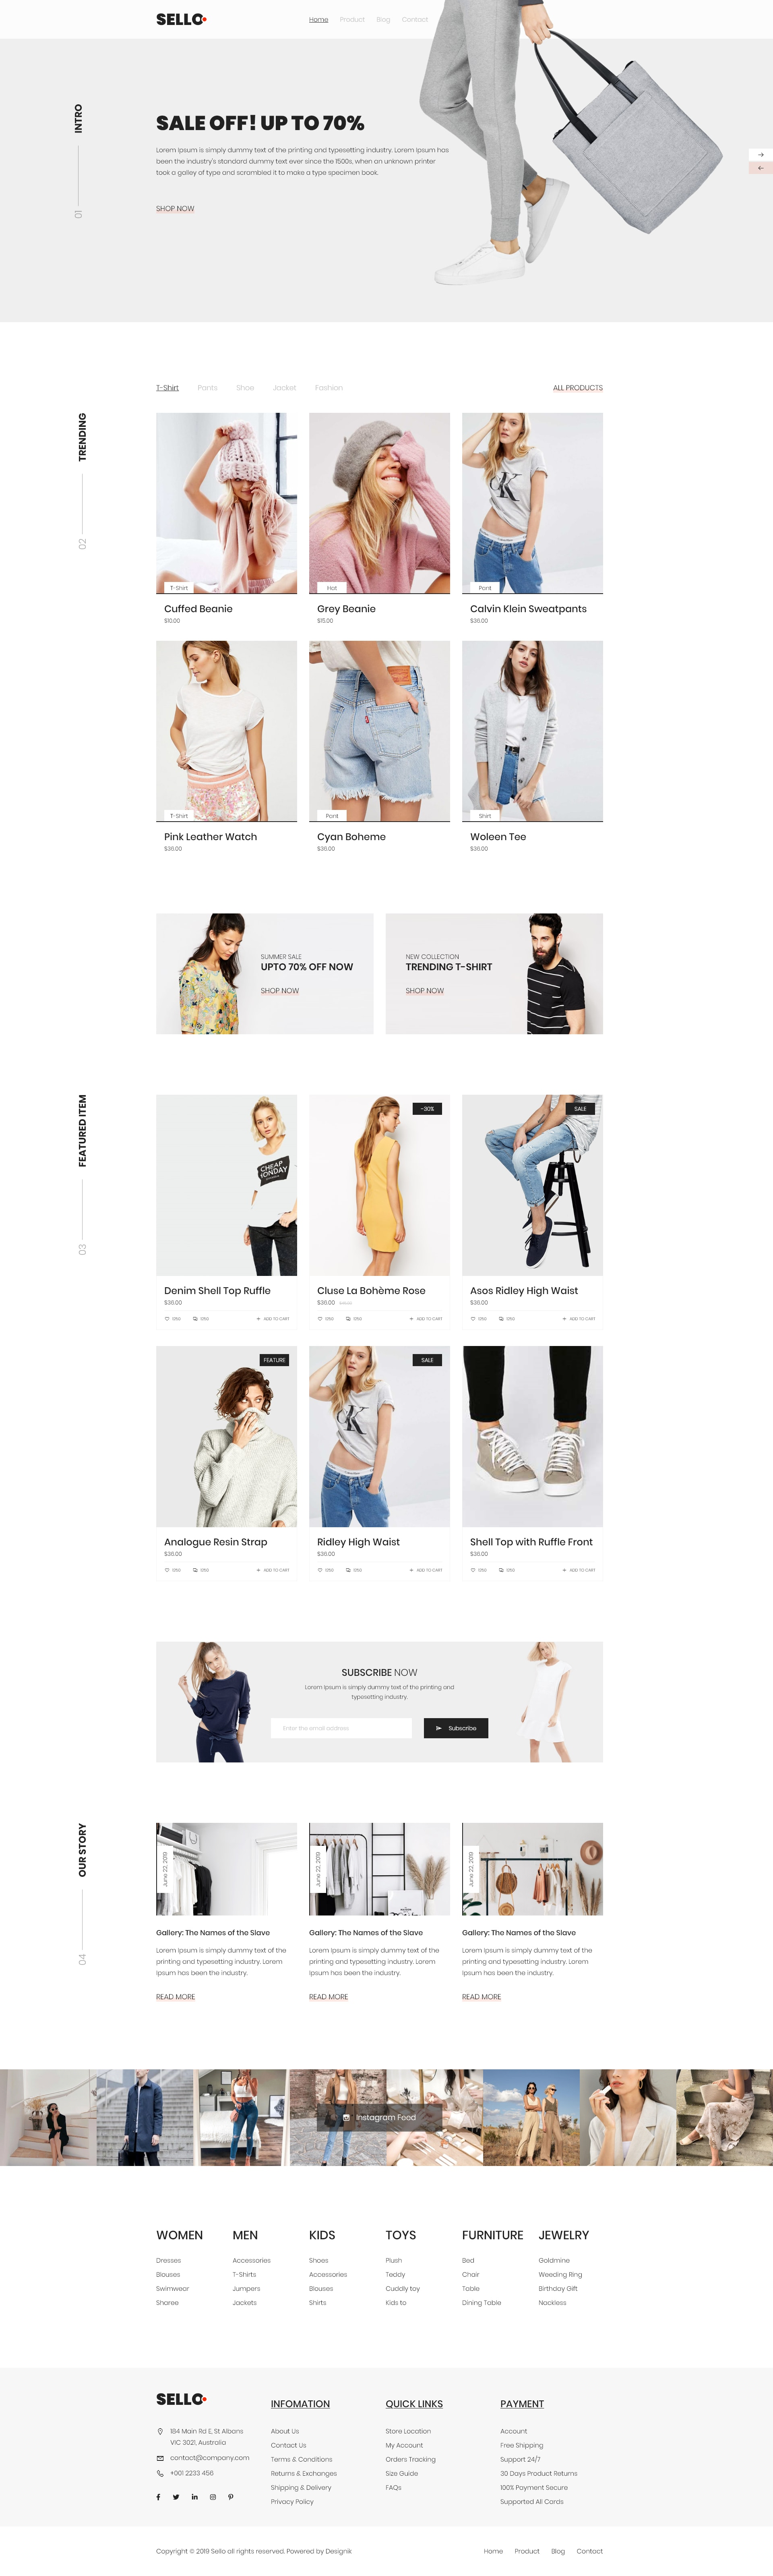 Sello - Mininal E-Commerce Website from UIGarage